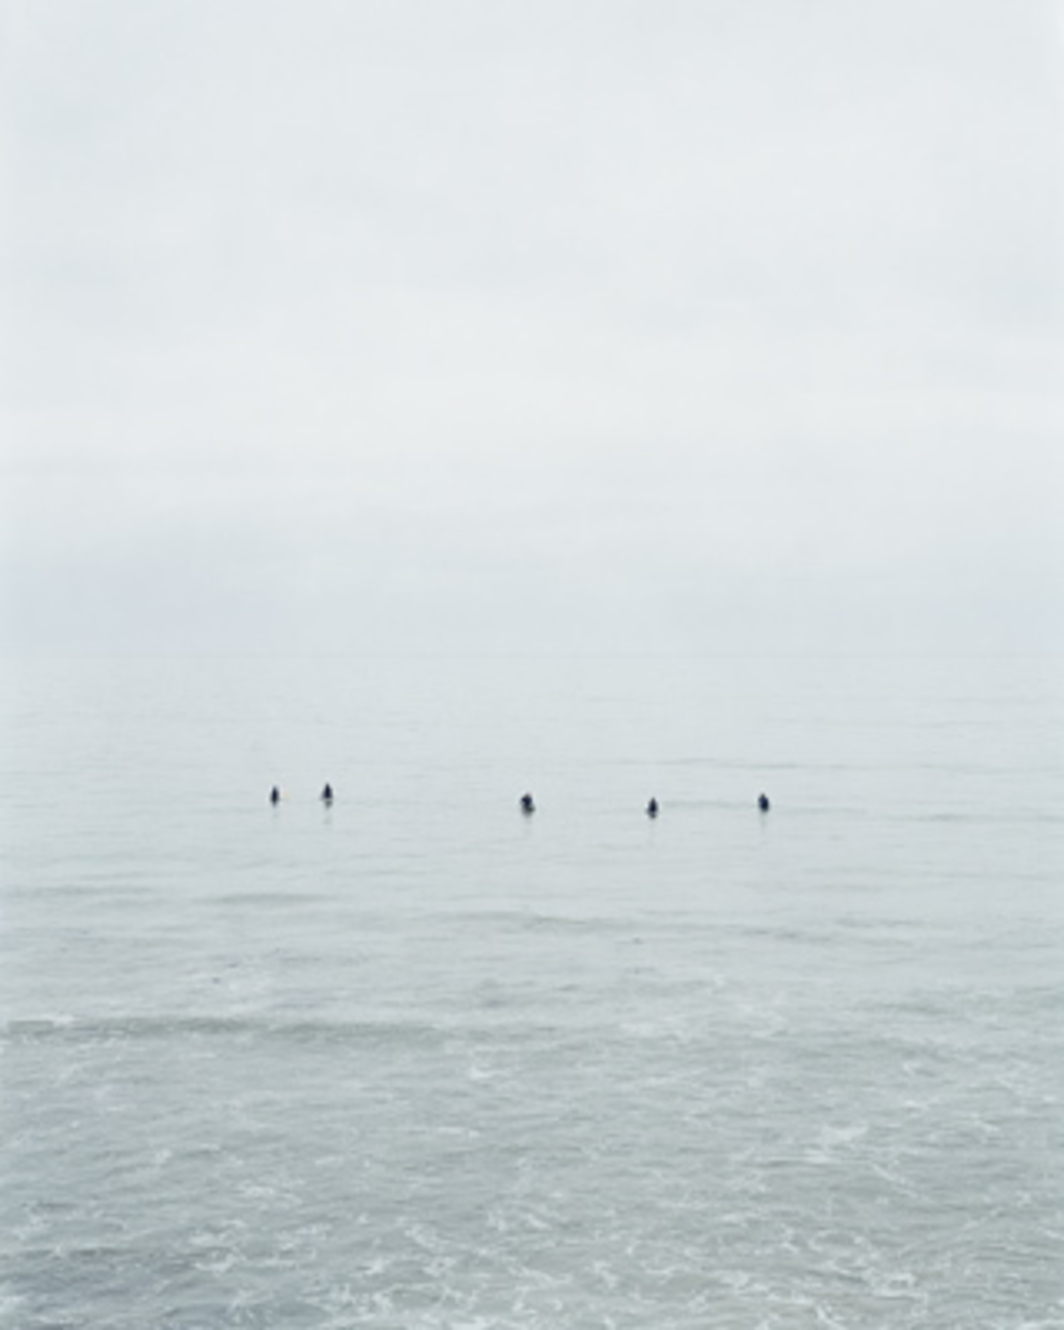 "Catherine Opie, Untitled #10 (Surfers), 2003, color photograph, 50 x 40""."